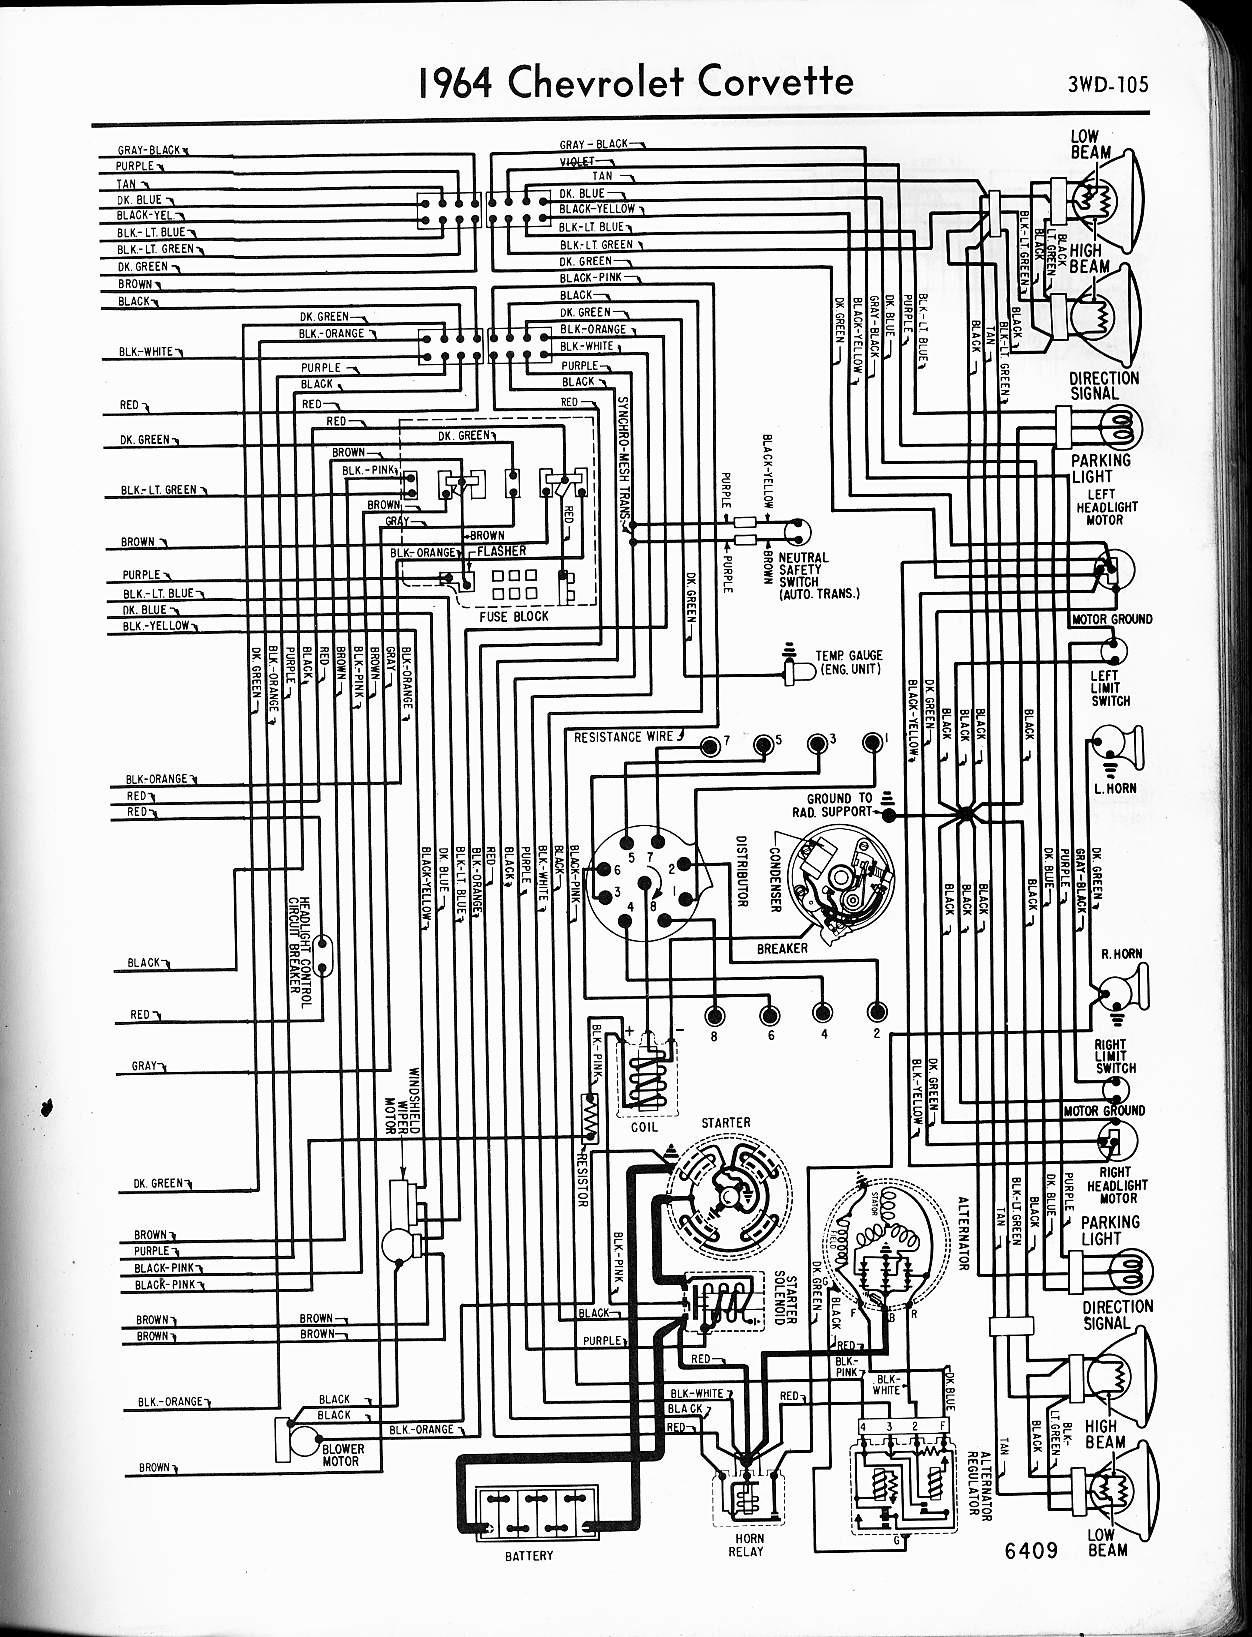 1966 corvette ac wiring wiring diagram for you corvette antenna wiring diagram 1966 corvette wiring diagram [ 1252 x 1637 Pixel ]